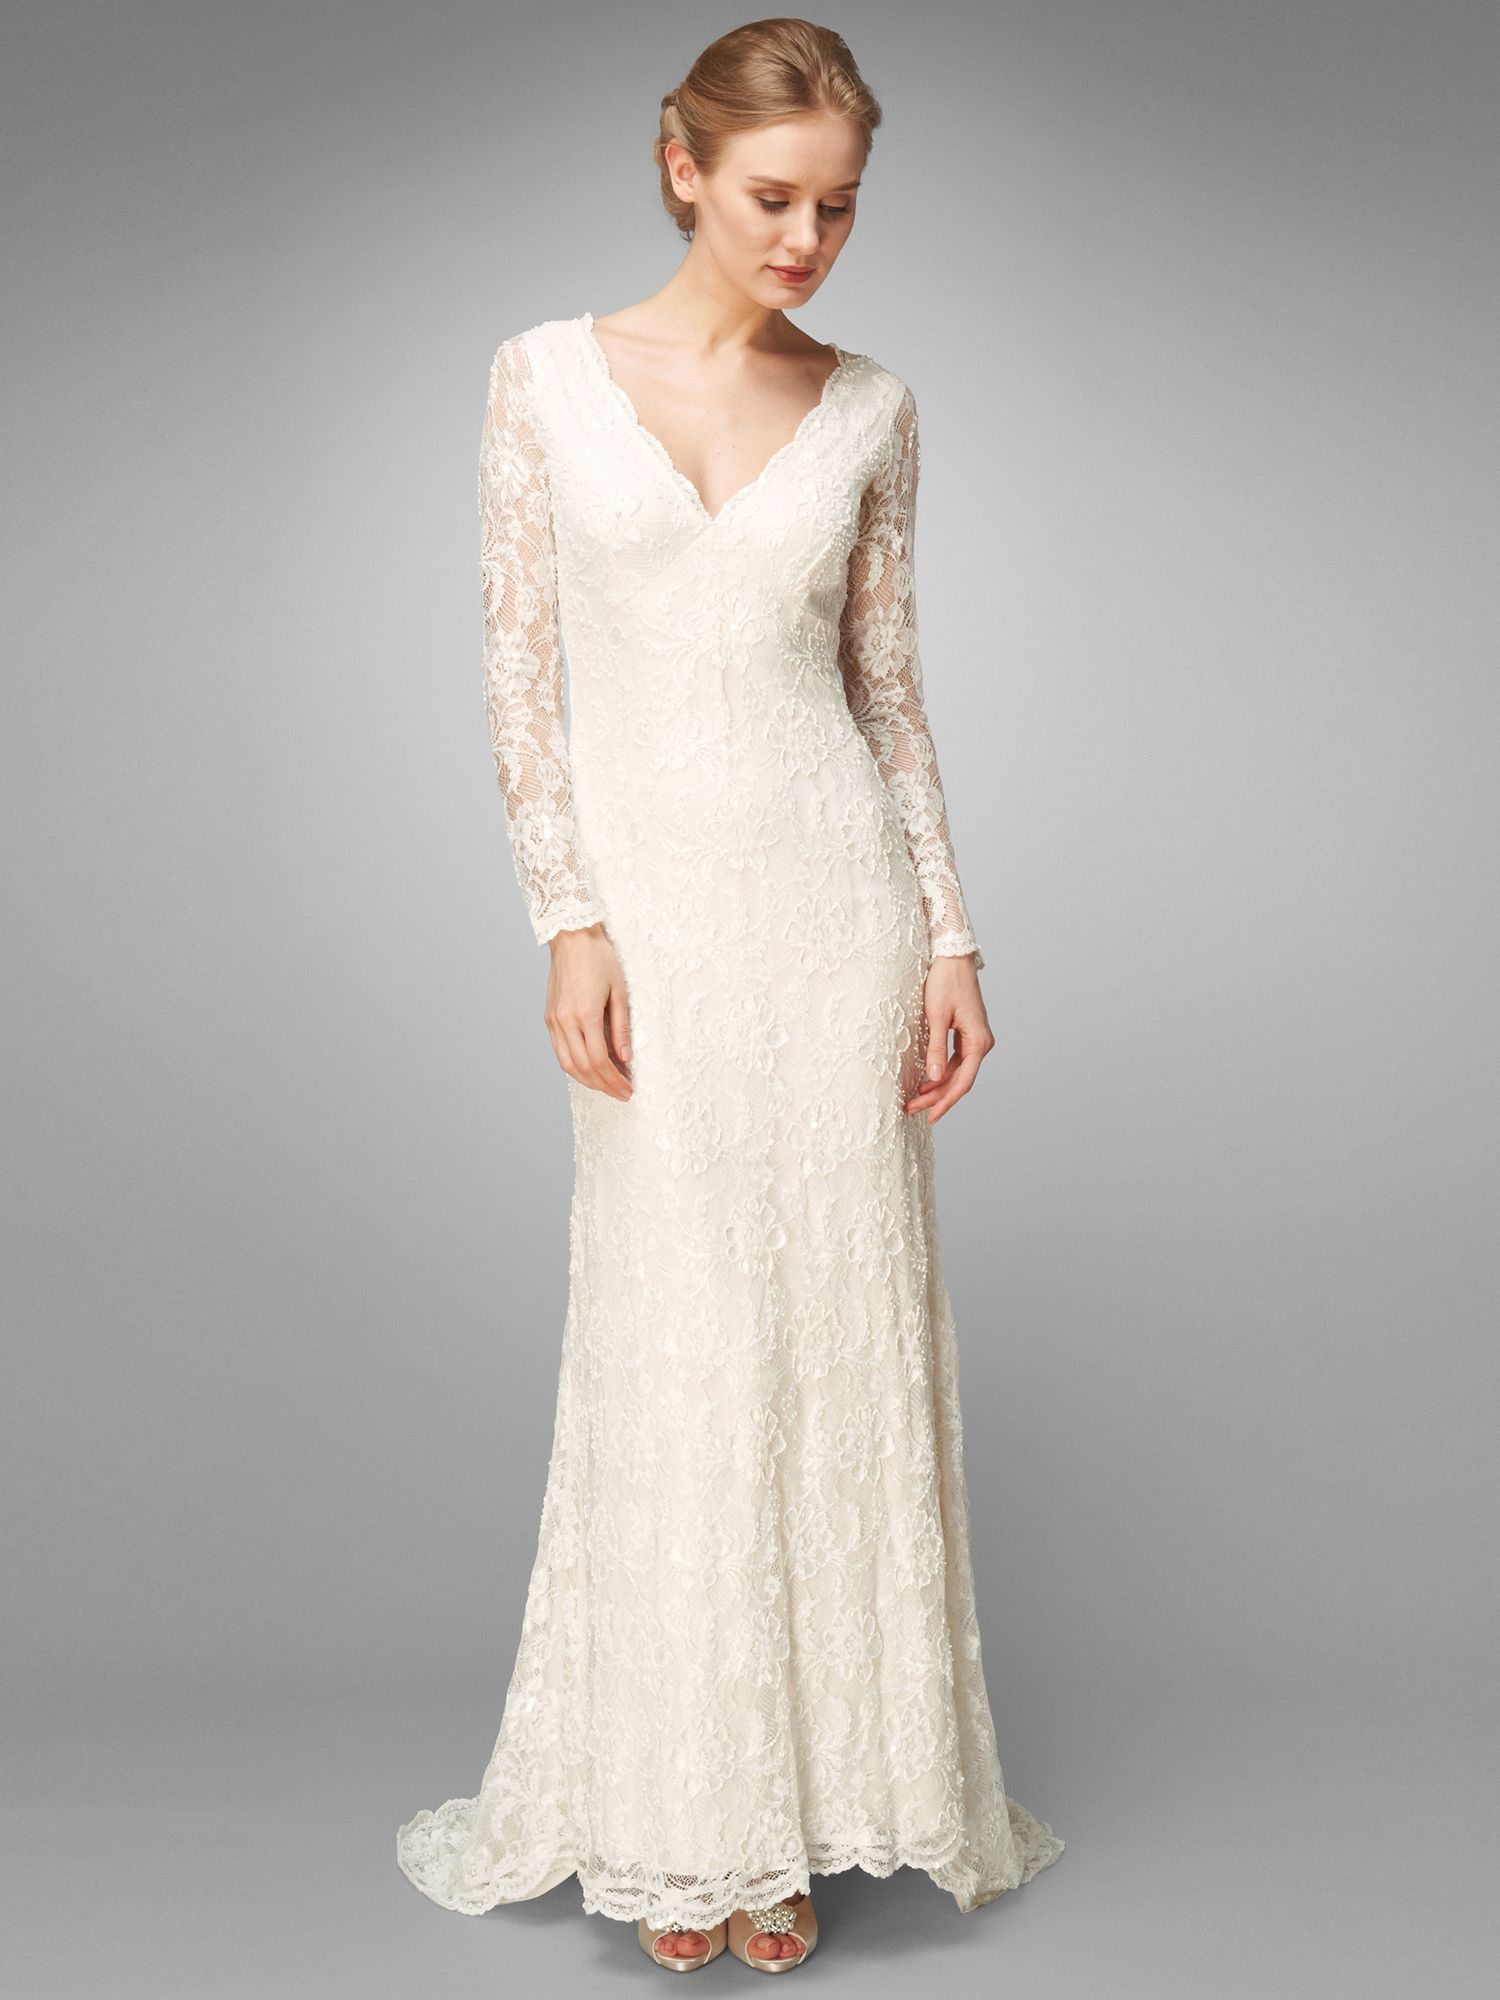 Evelyn lace beaded wedding dress